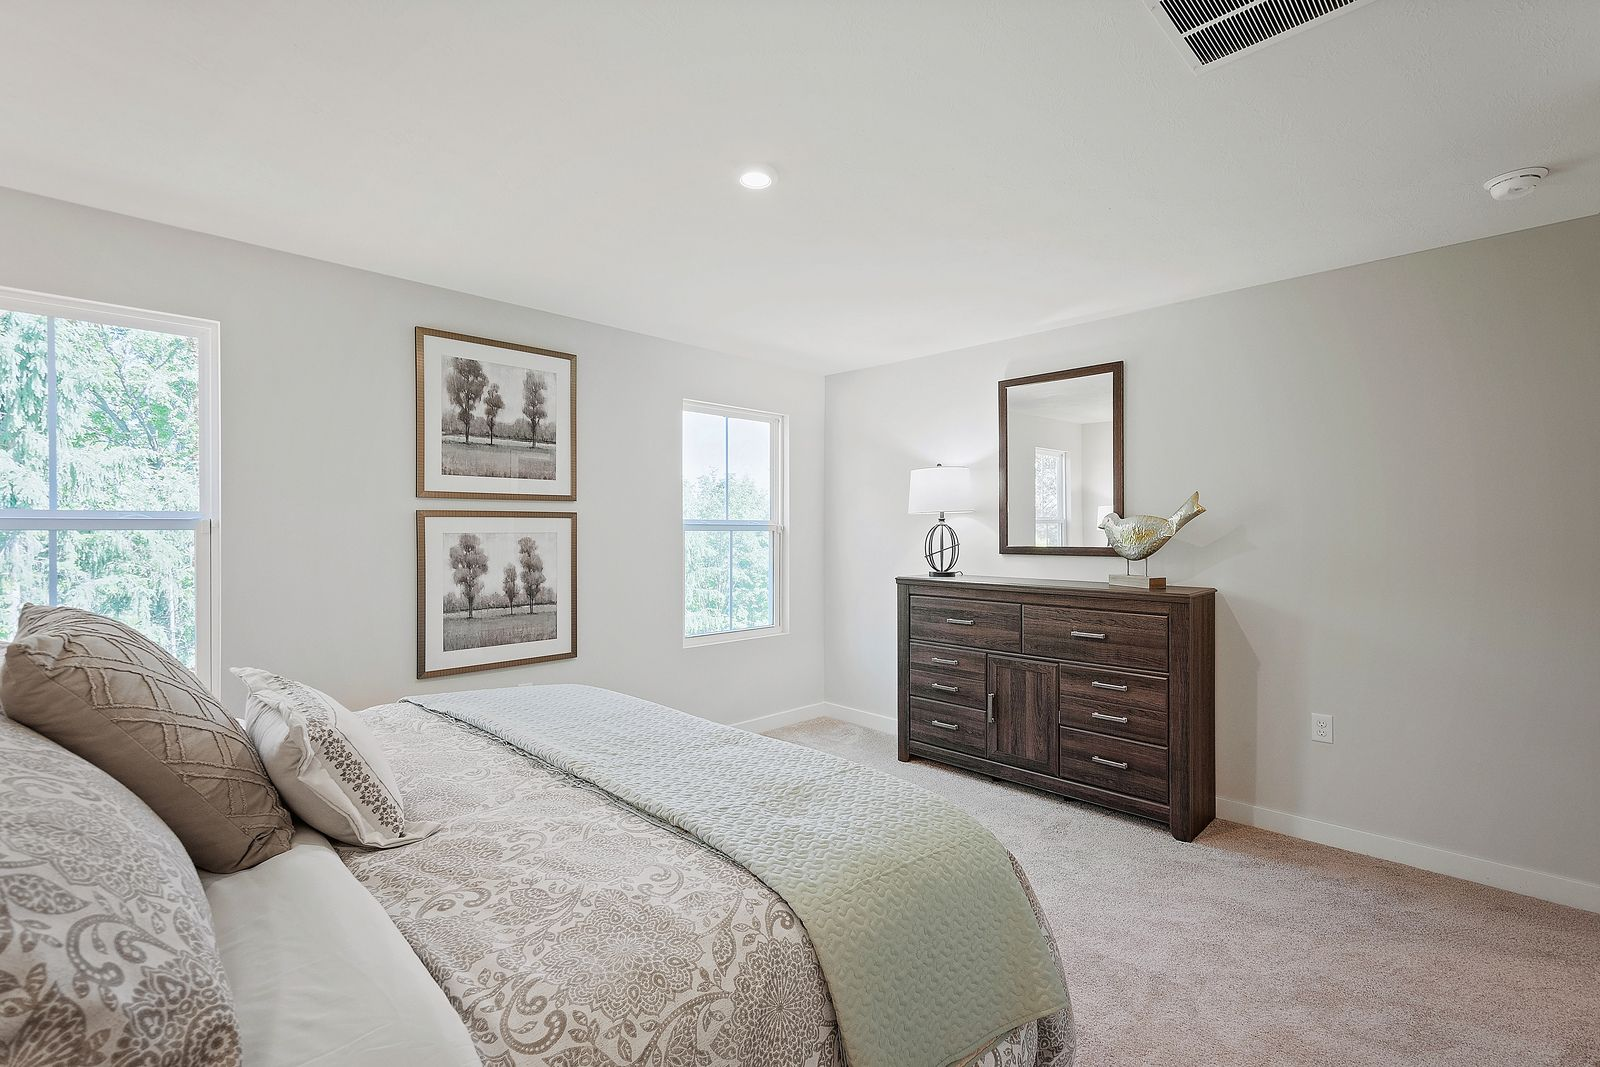 Bedroom featured in the Dominica Spring By Ryan Homes in Sussex, DE